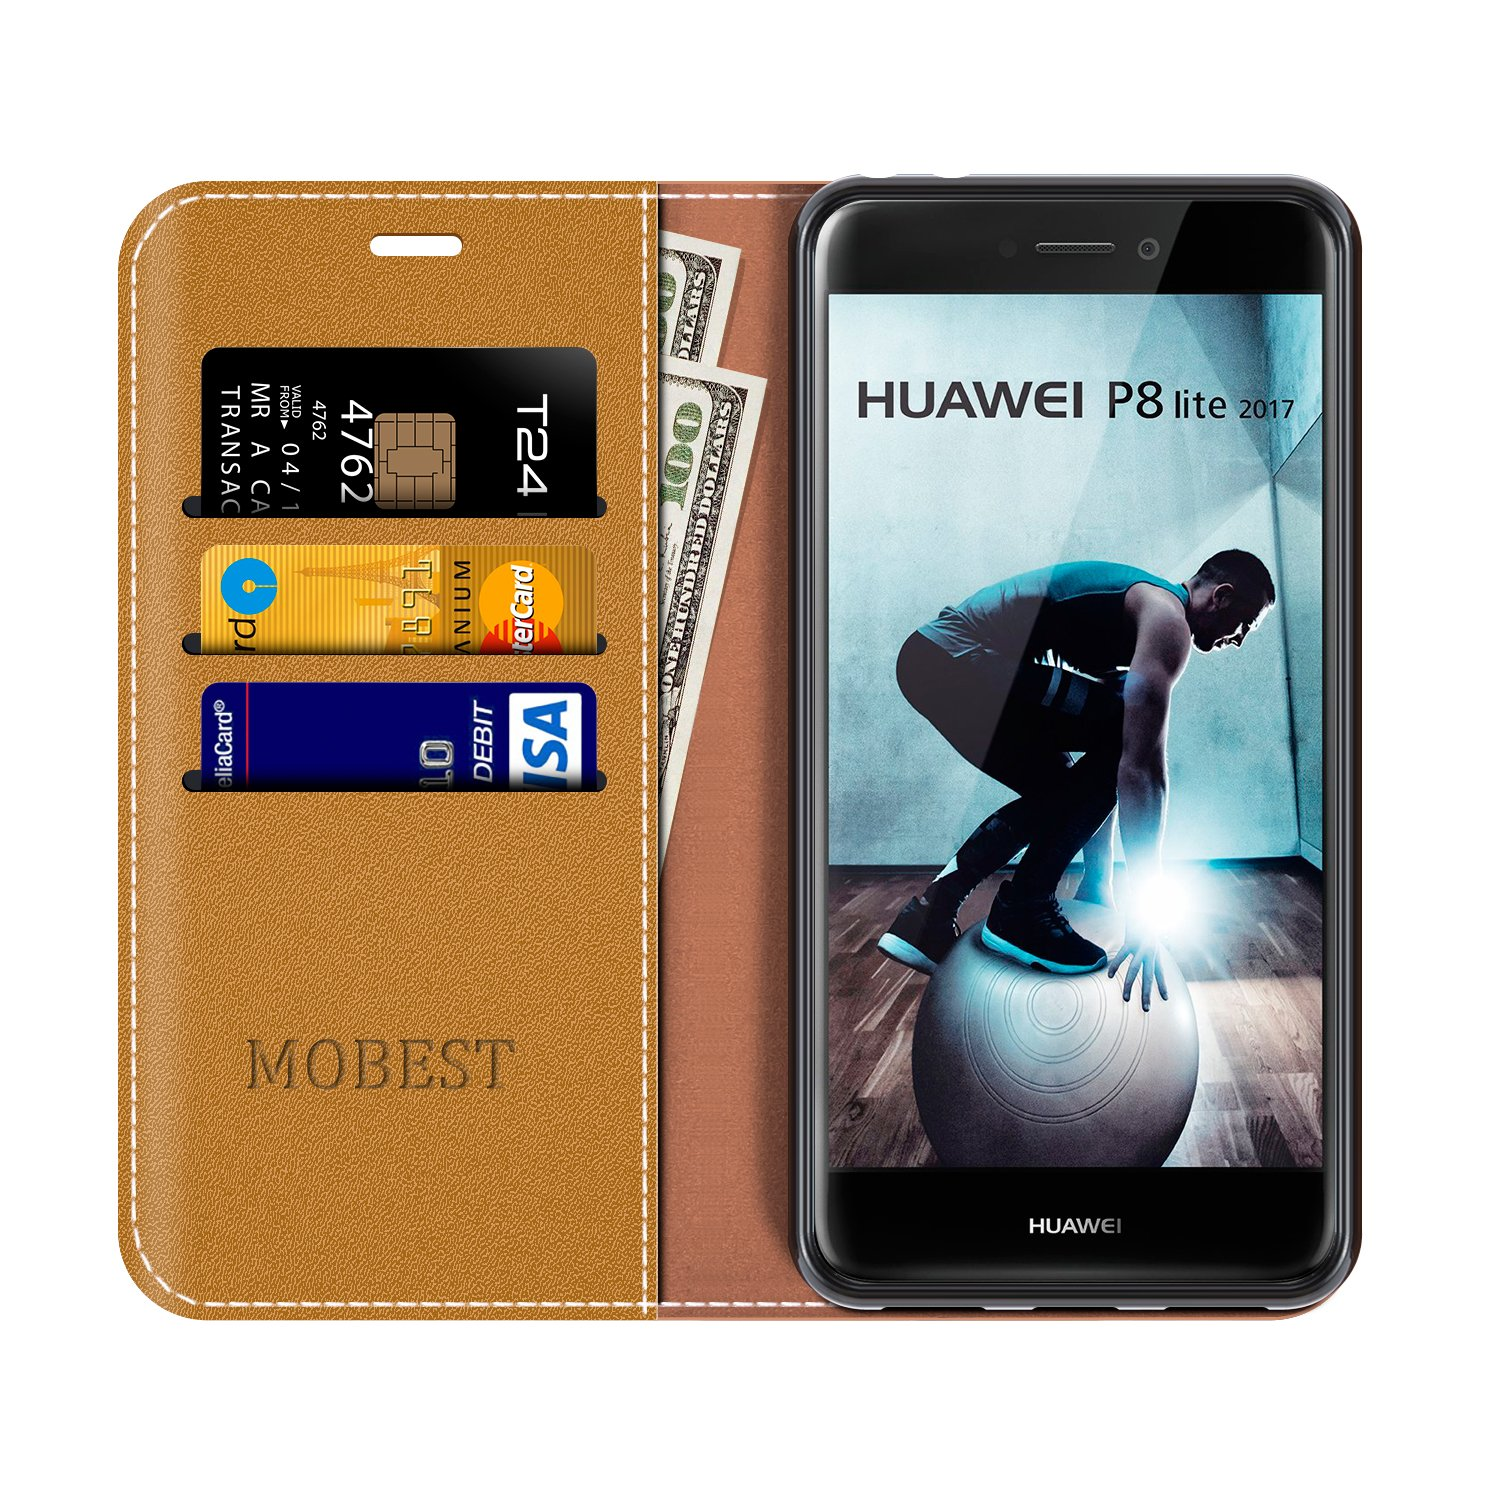 coque huawei p8 lite 2017 mobest